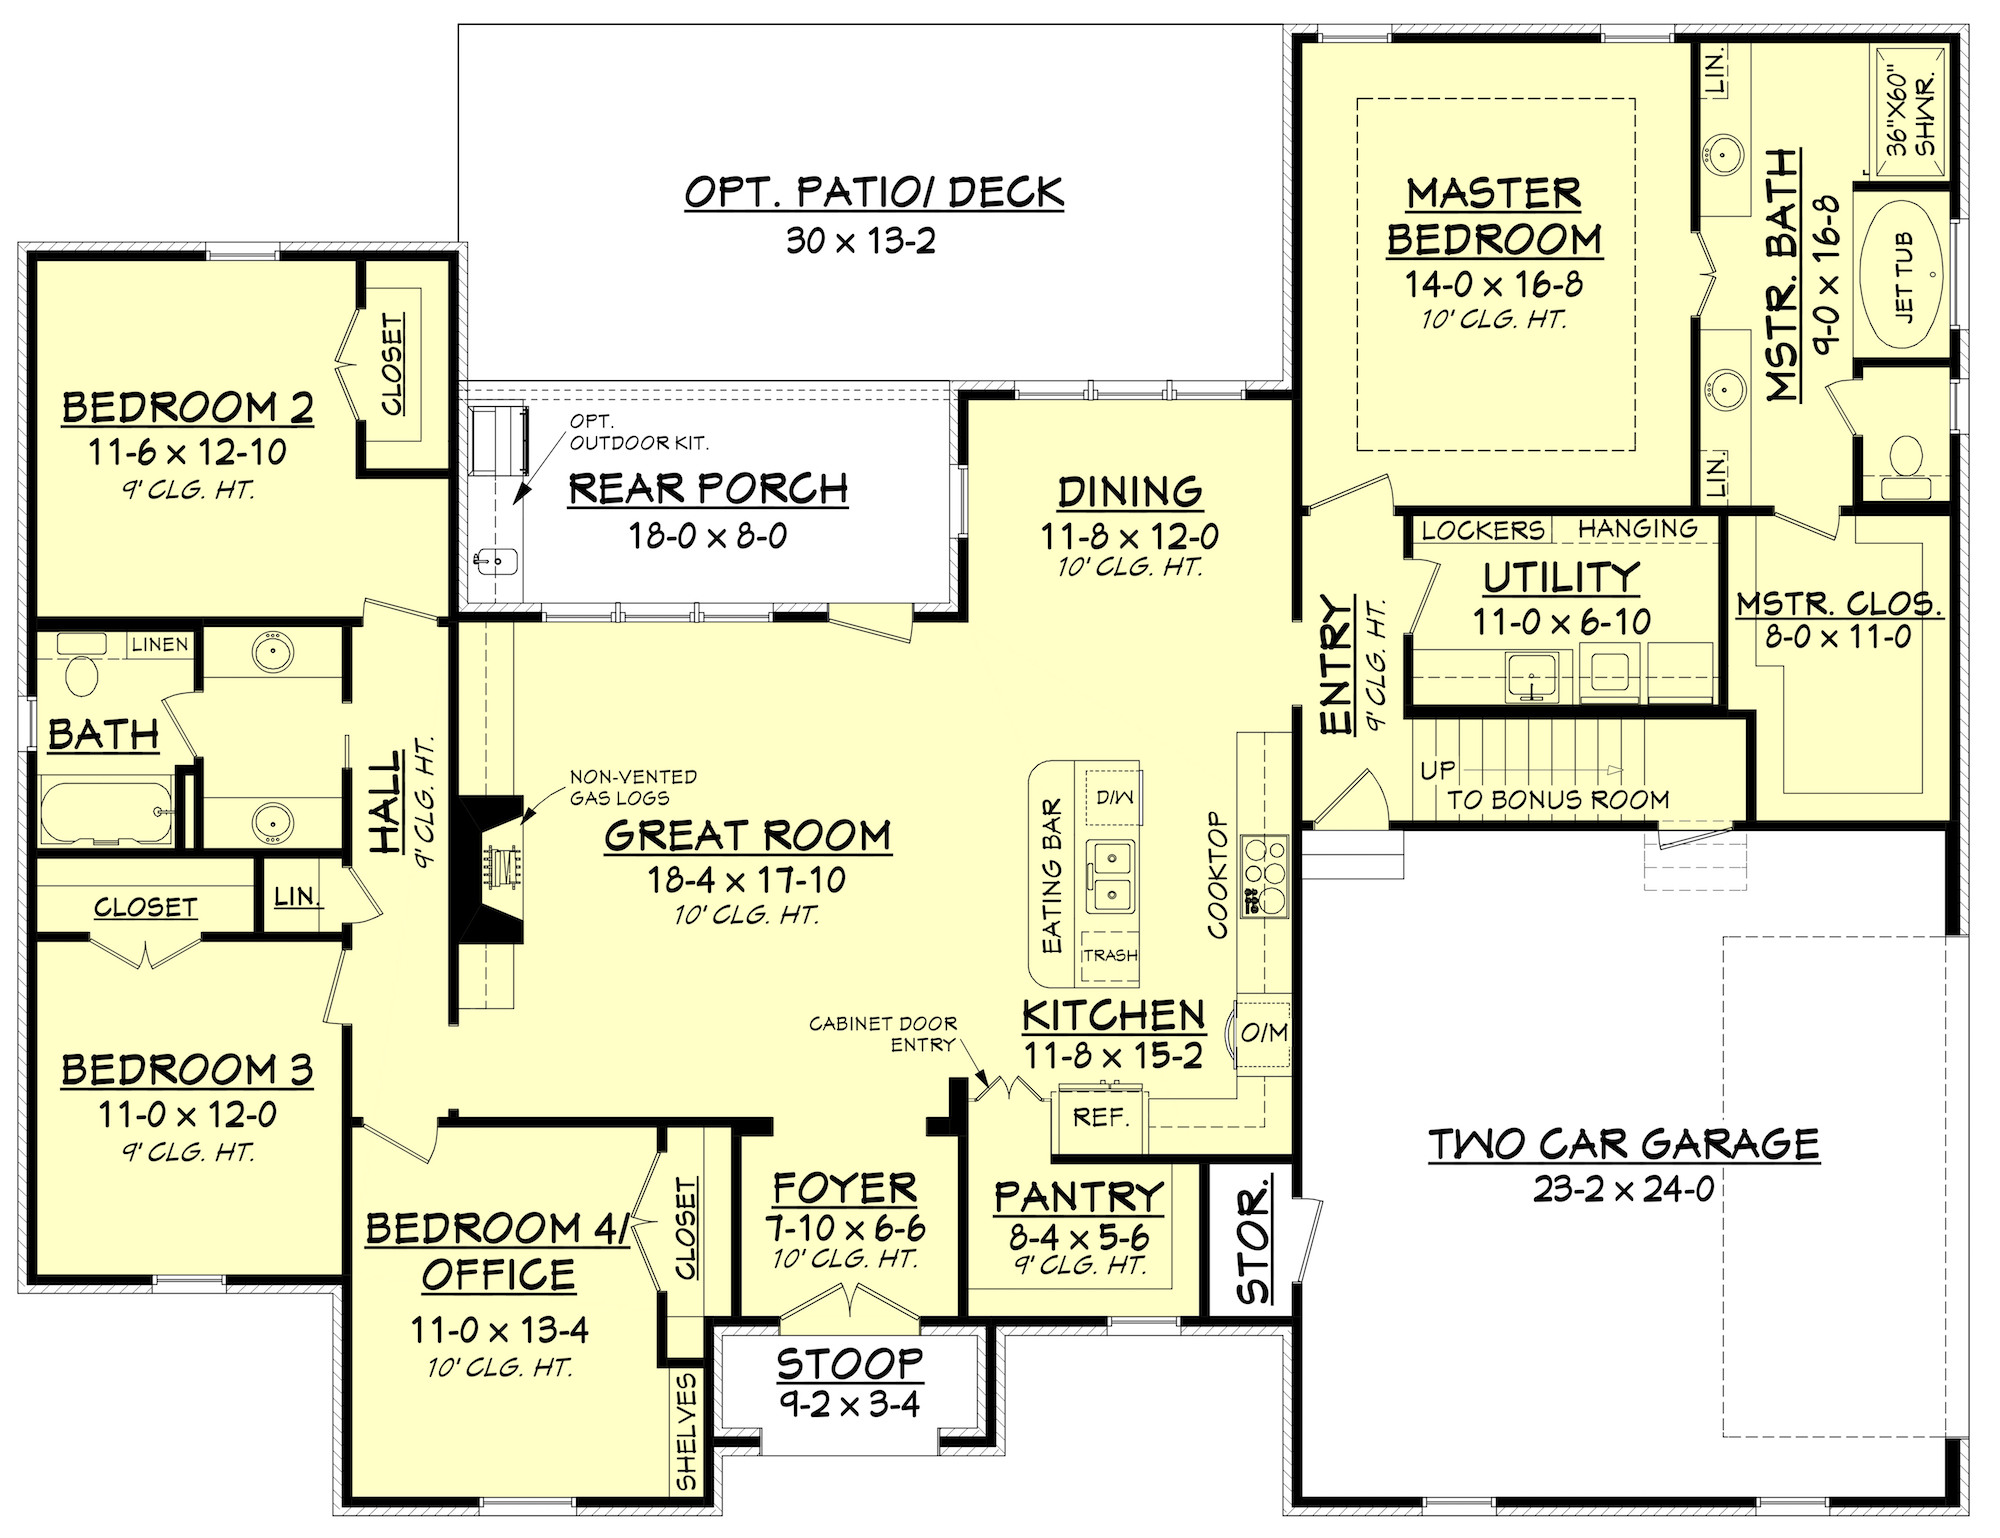 Acadian house plan 142 1154 4 bedrm 2210 sq ft home plan for Where to find house plans